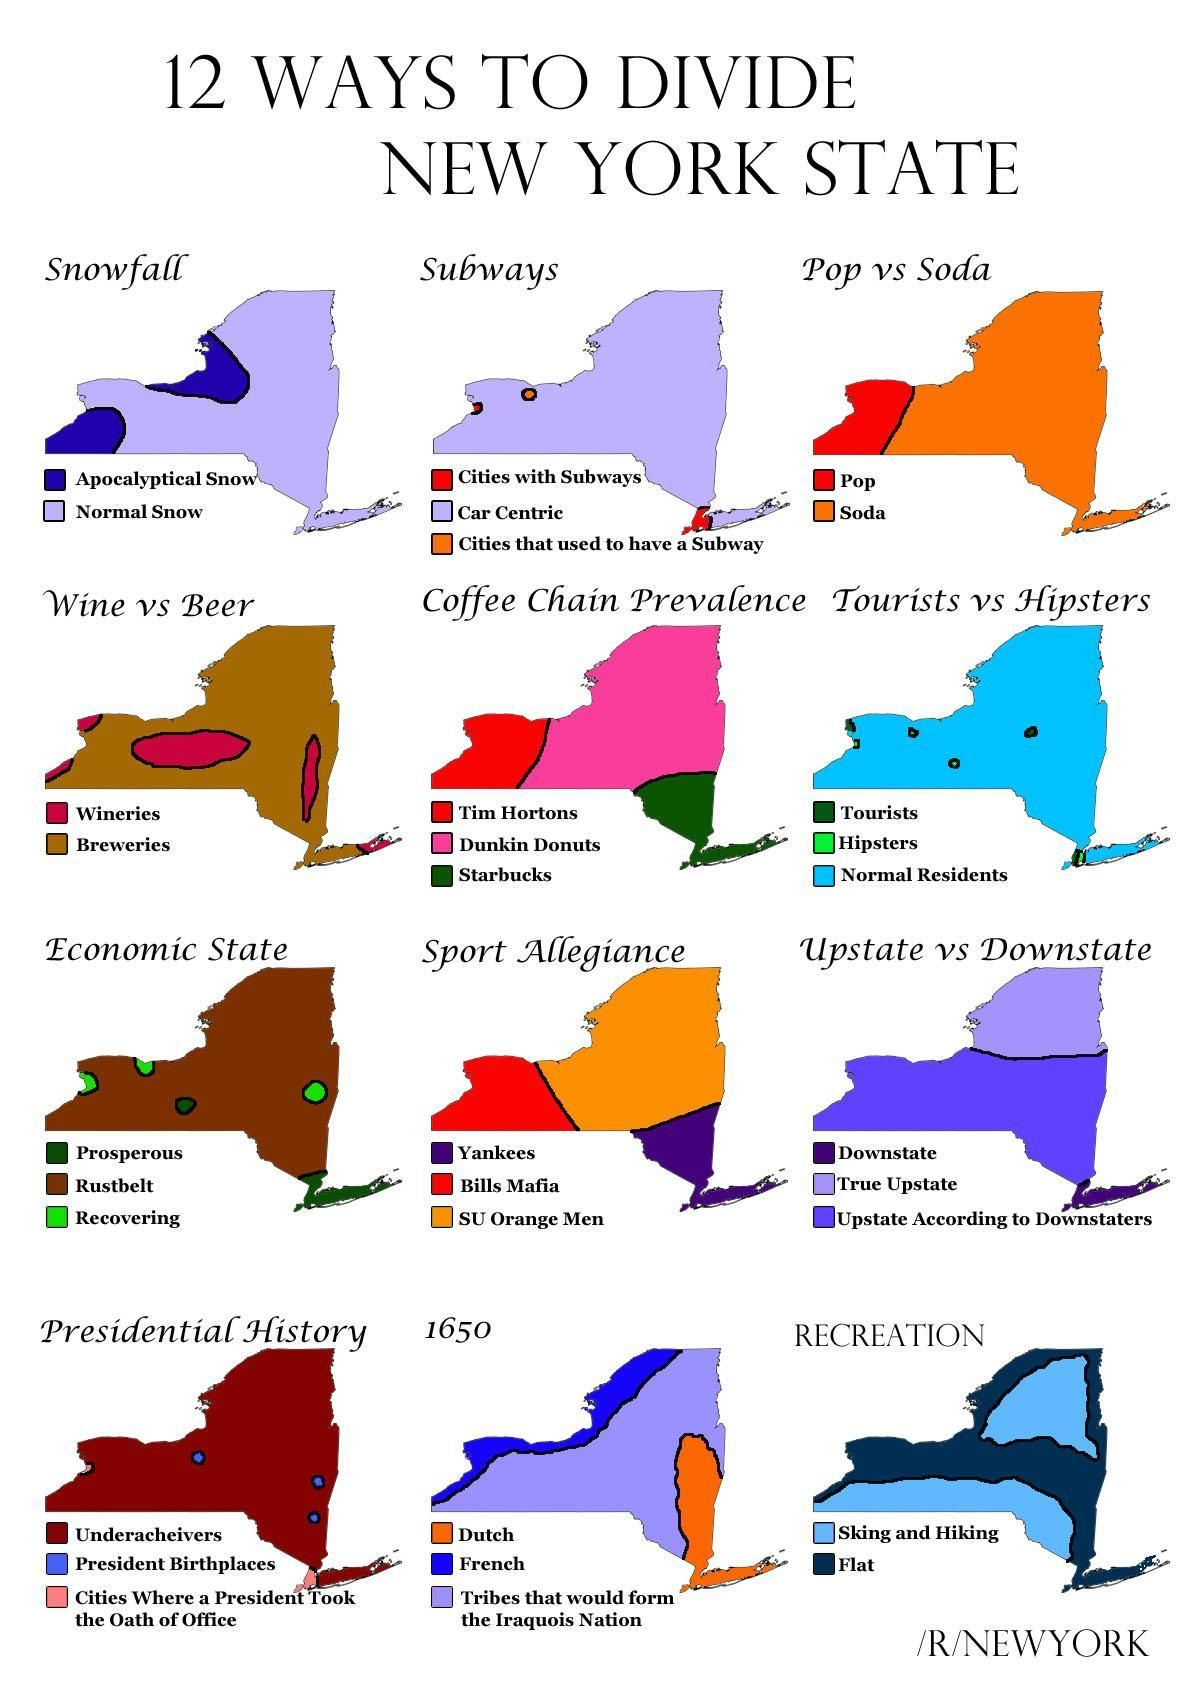 Divide Maps Map State New To Ways Map Of Stereotype 12 More gt; Maps York Funny gt;